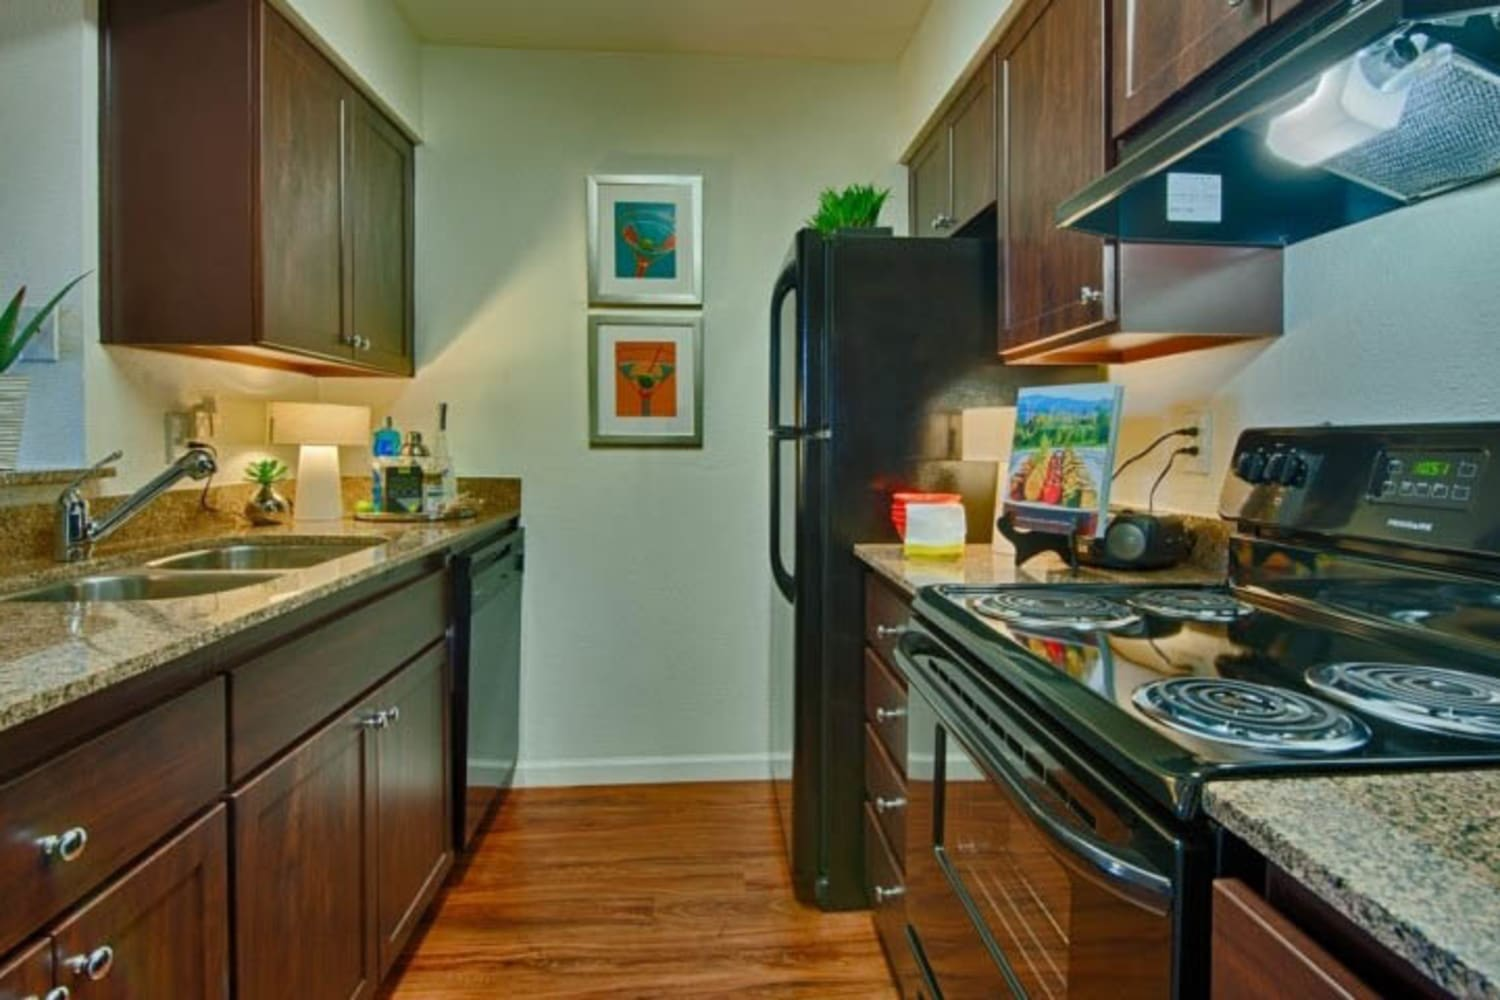 Modern appliances in kitchens at Cabrillo Apartments in Scottsdale, Arizona